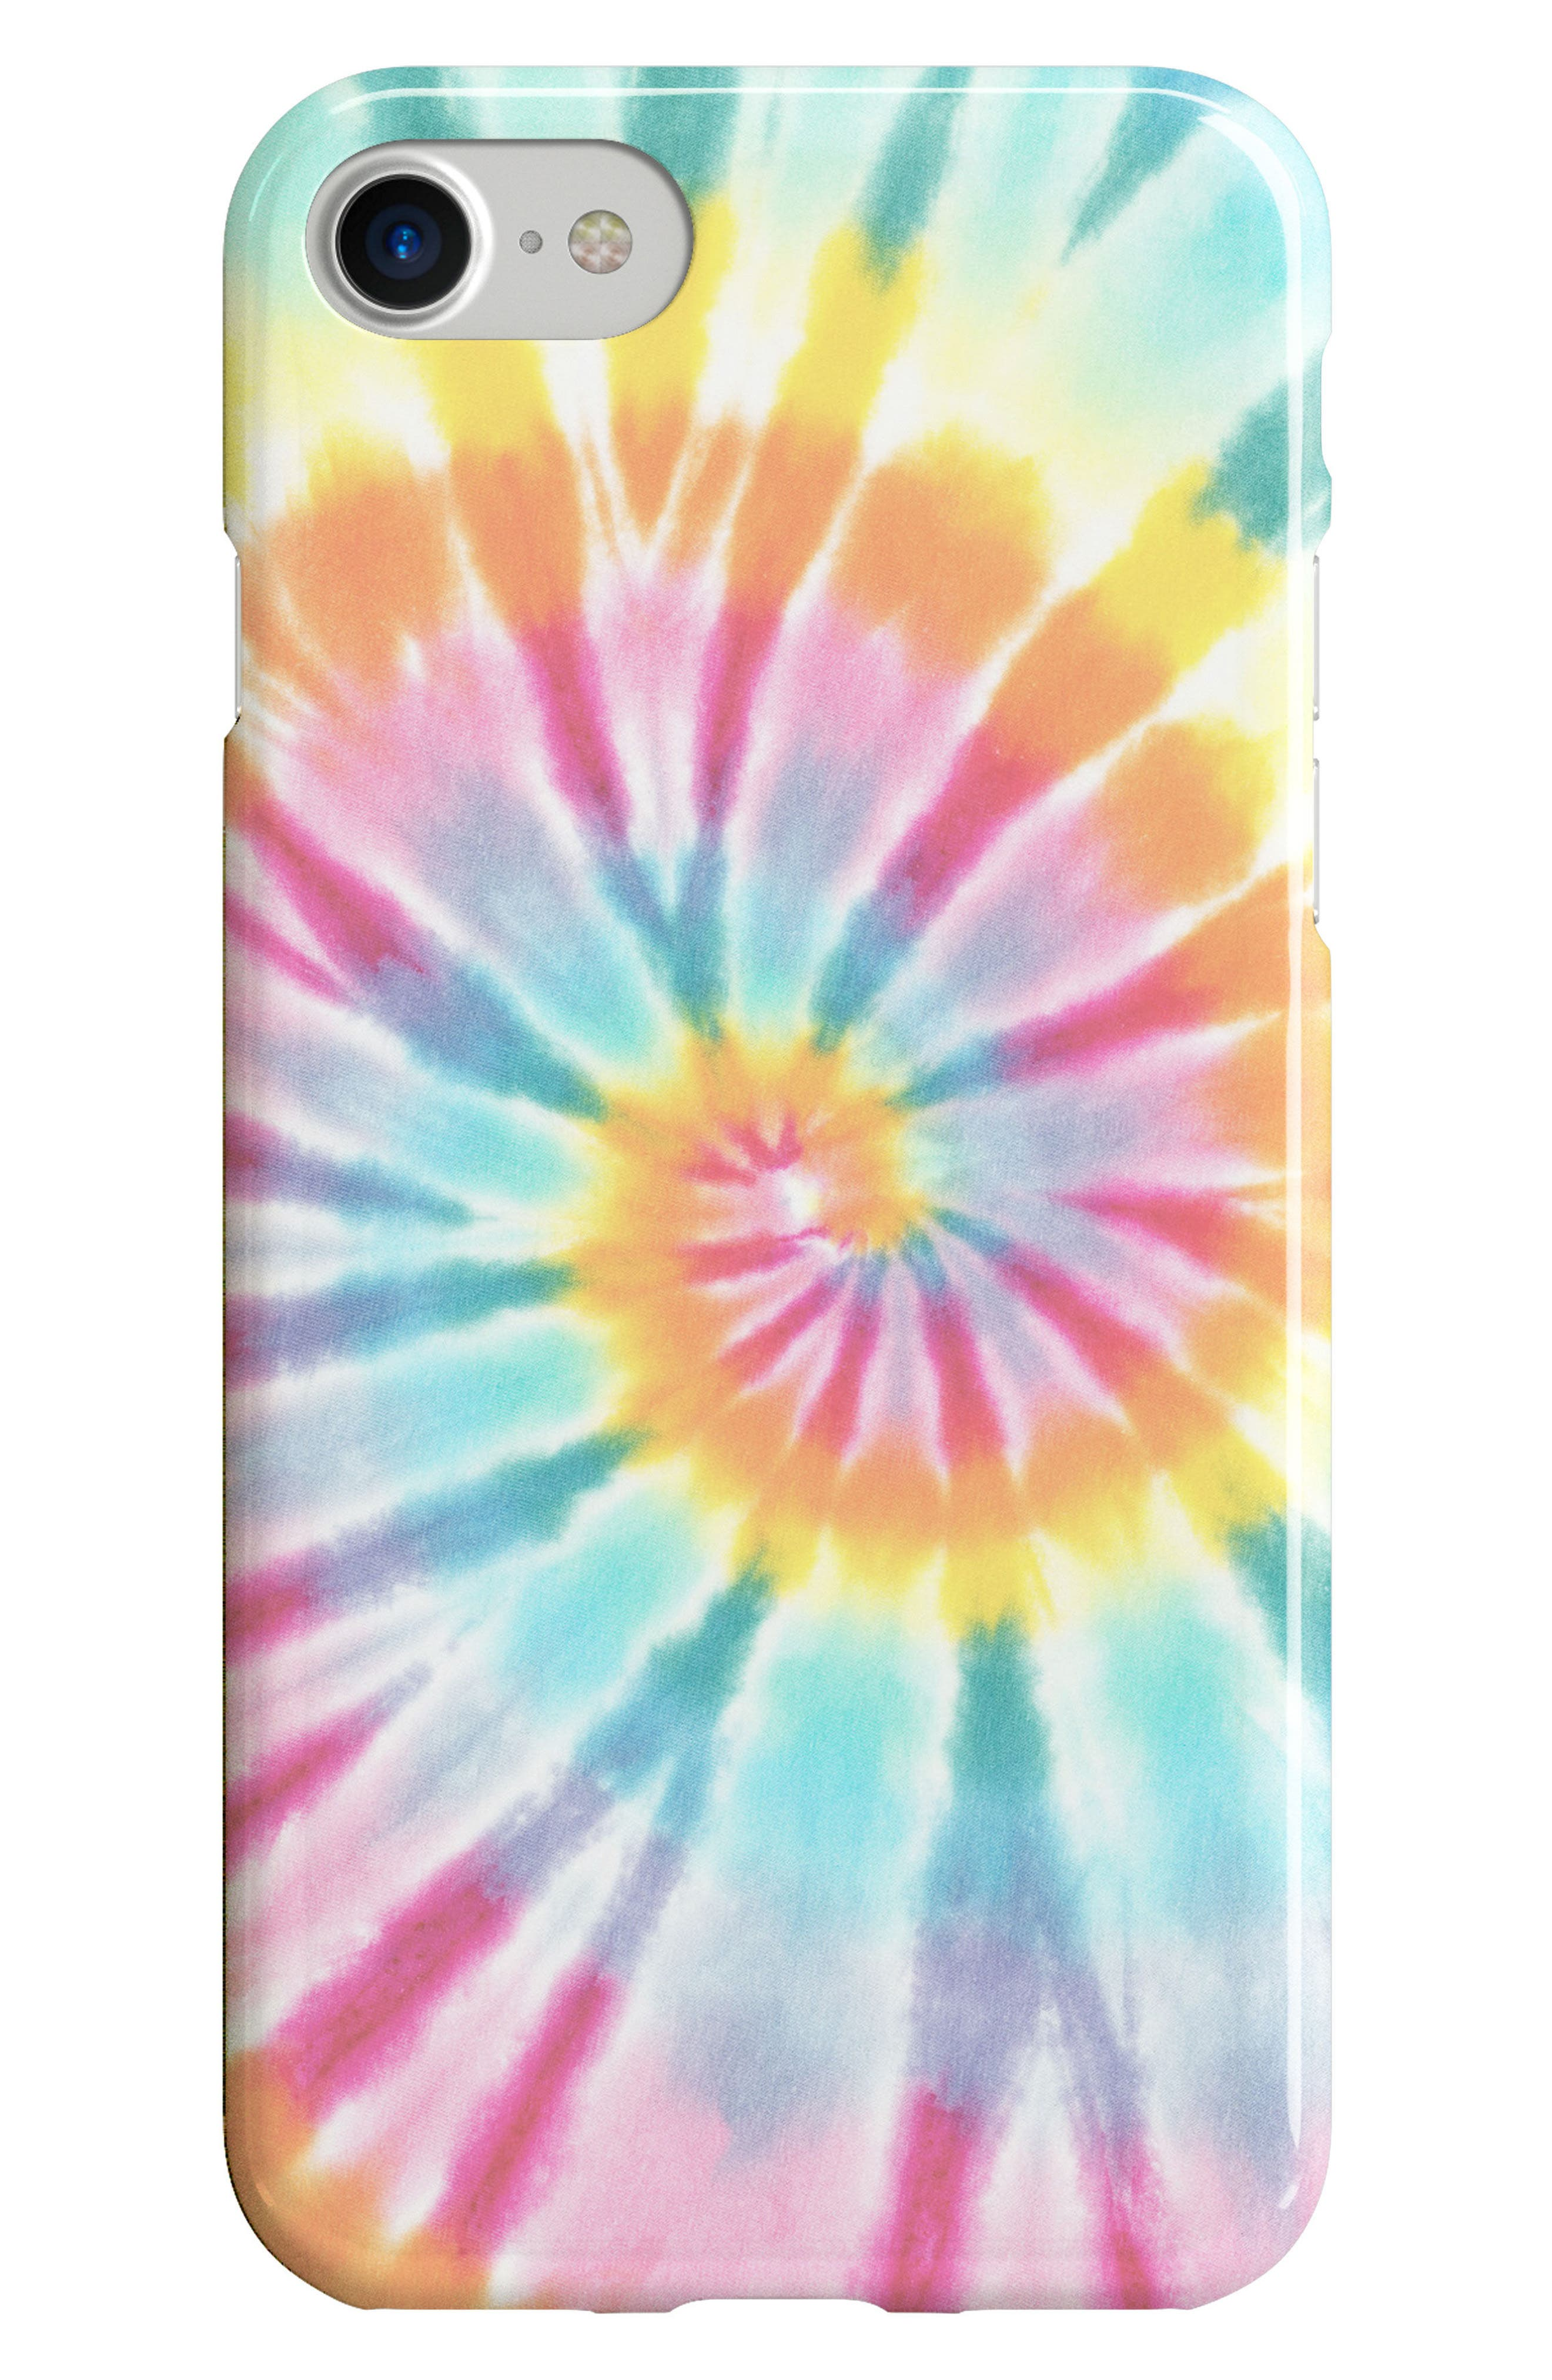 Main Image - Recover Tie Dye iPhone 6/7 Case